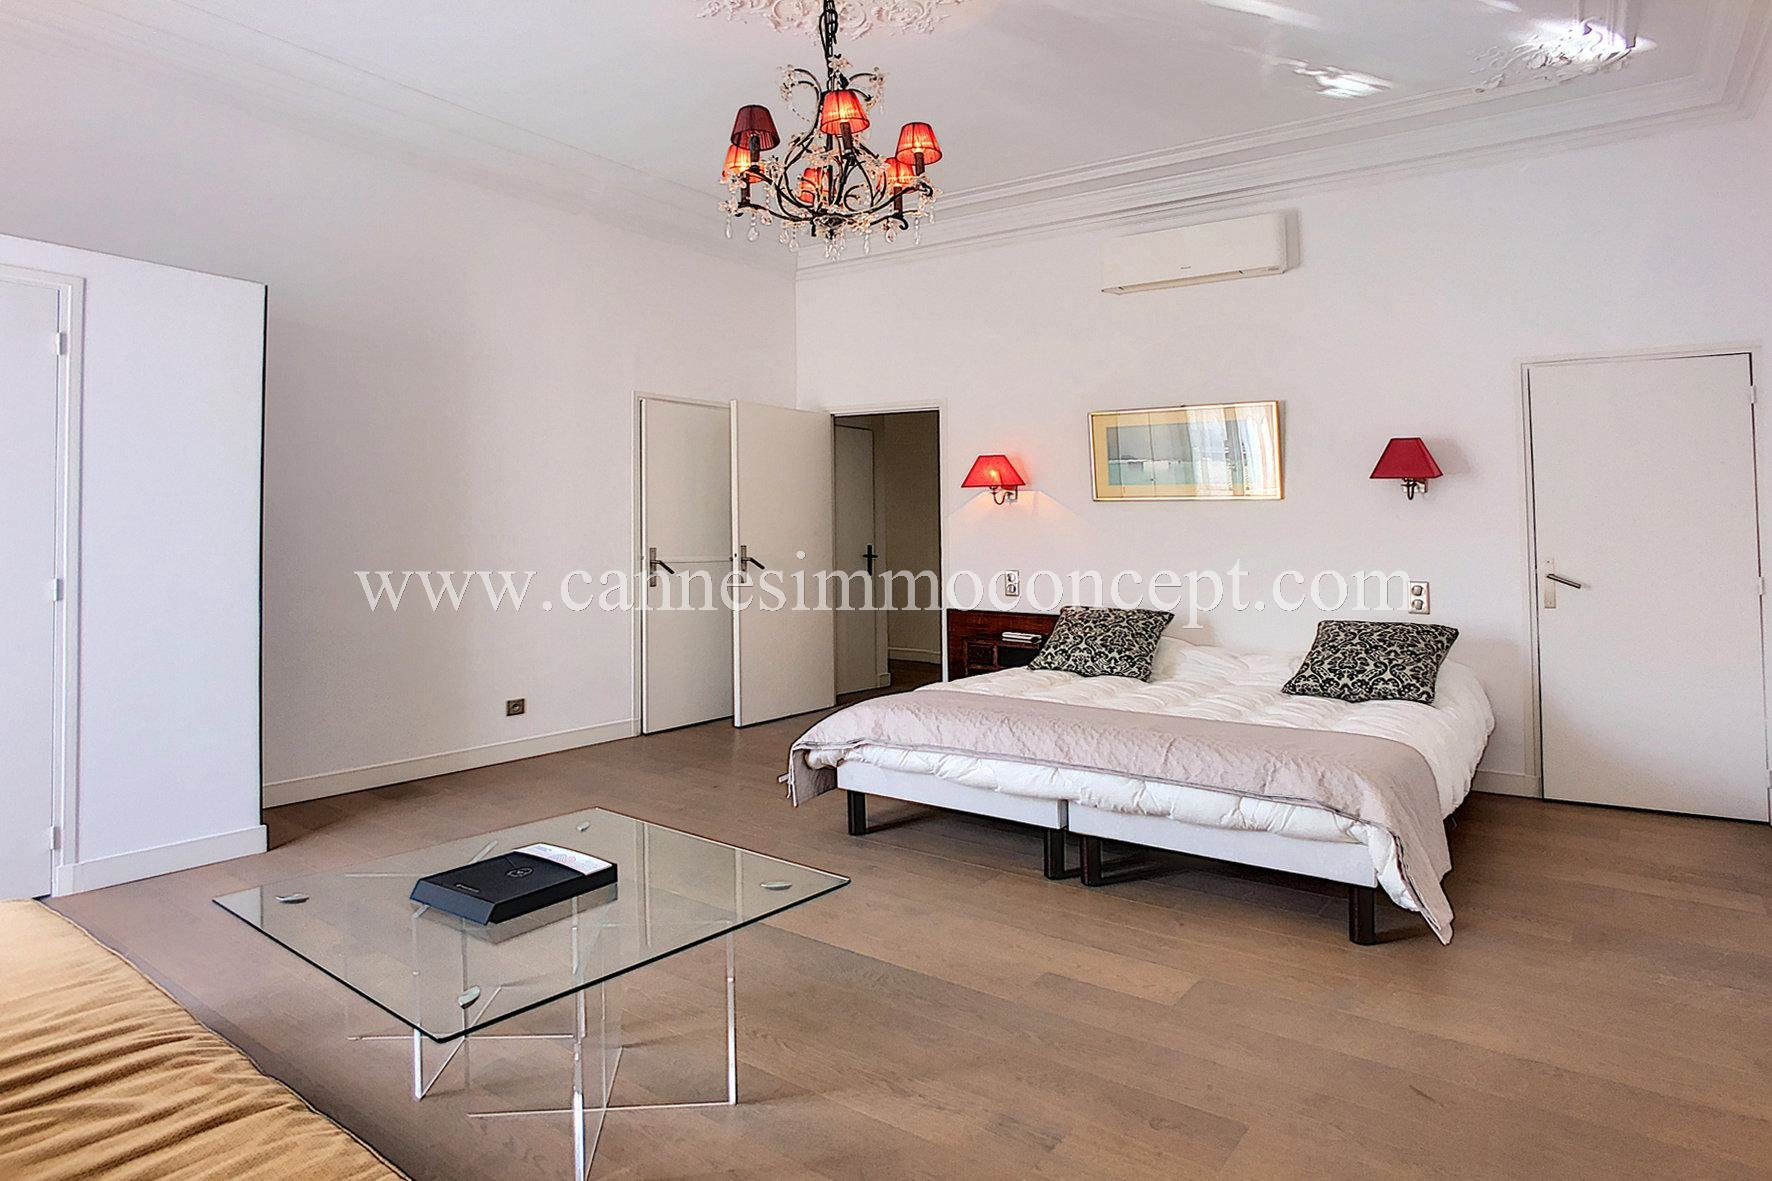 HEART OF CANNES. 4 room-apartment